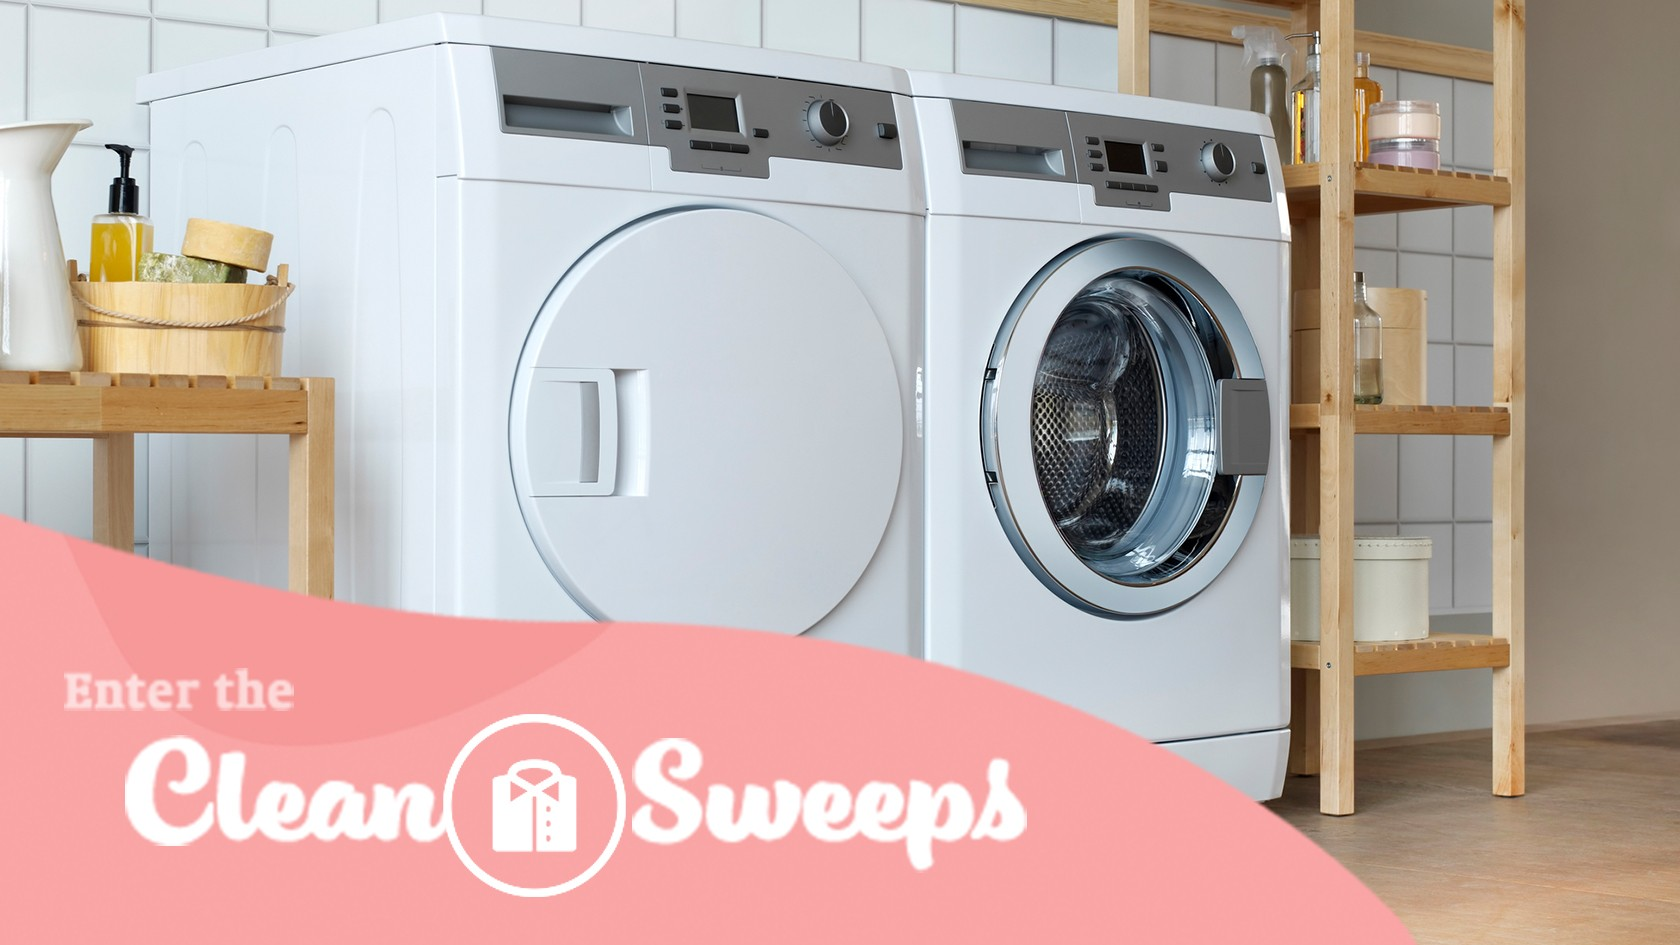 Enter for your chance to win a washer & dryer